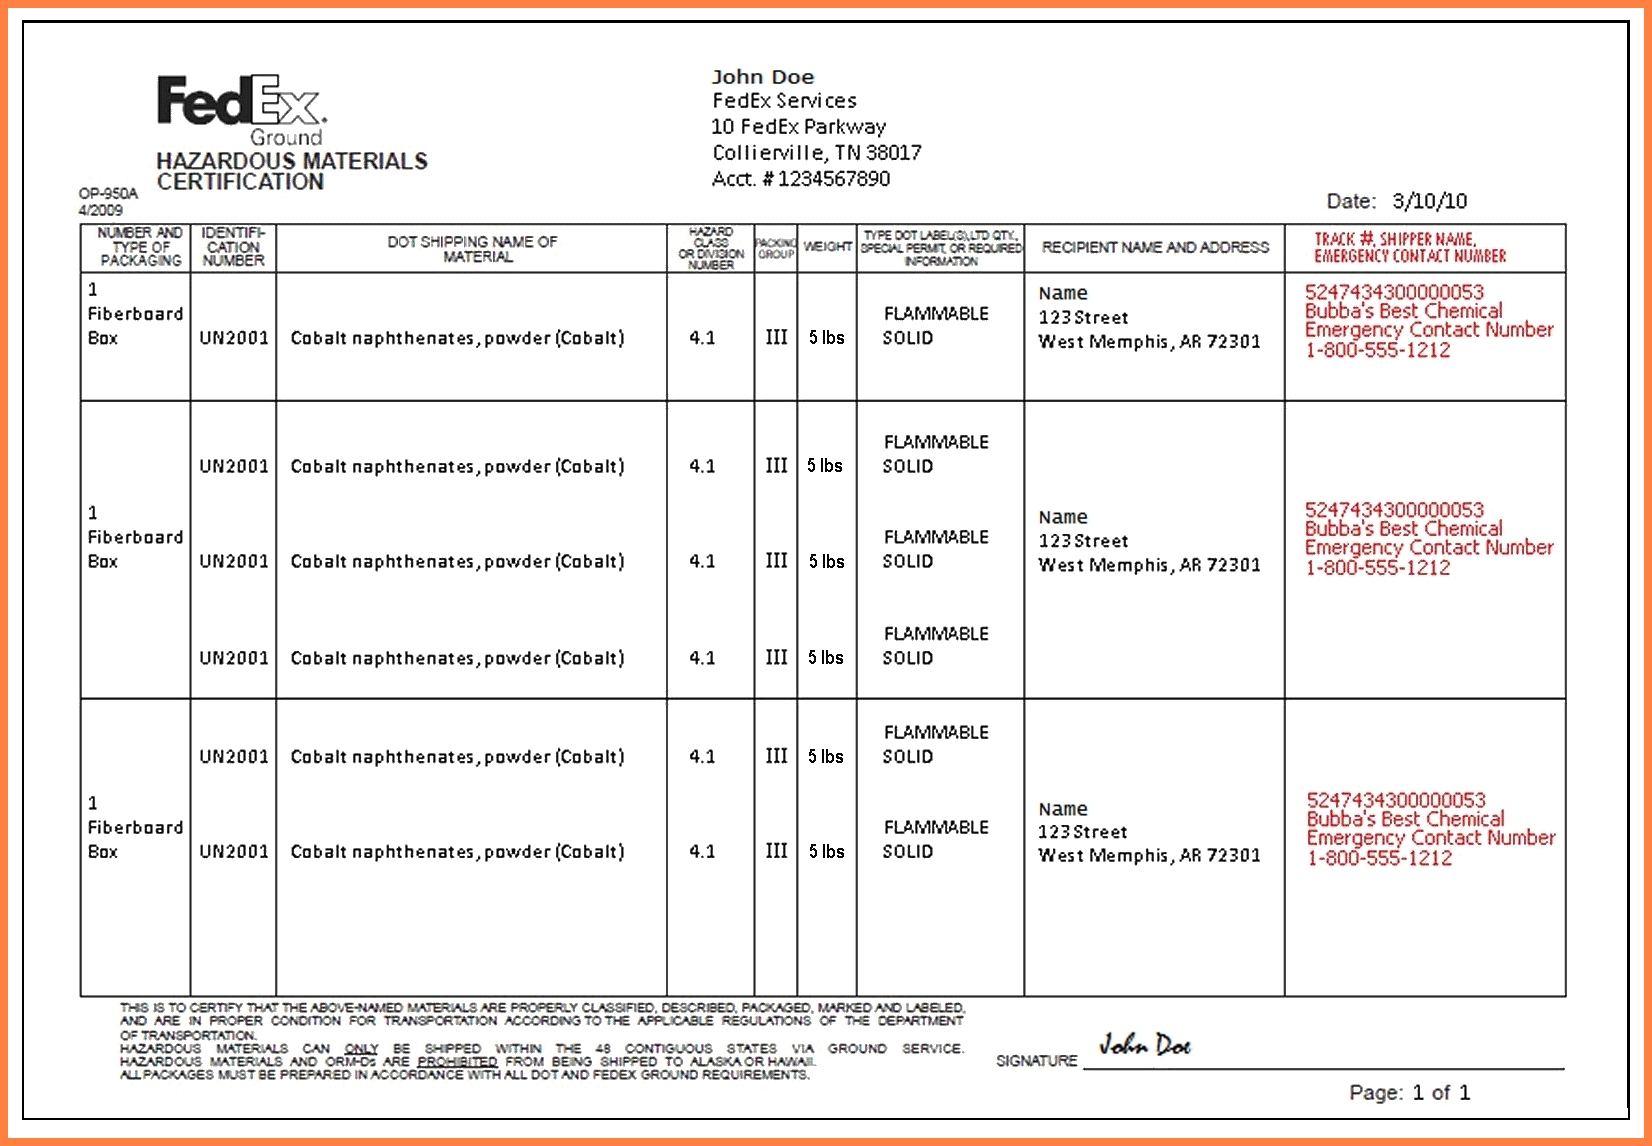 fedex ground commercial invoice 12 commercial invoice fedex sample invoice template 1652 X 1146